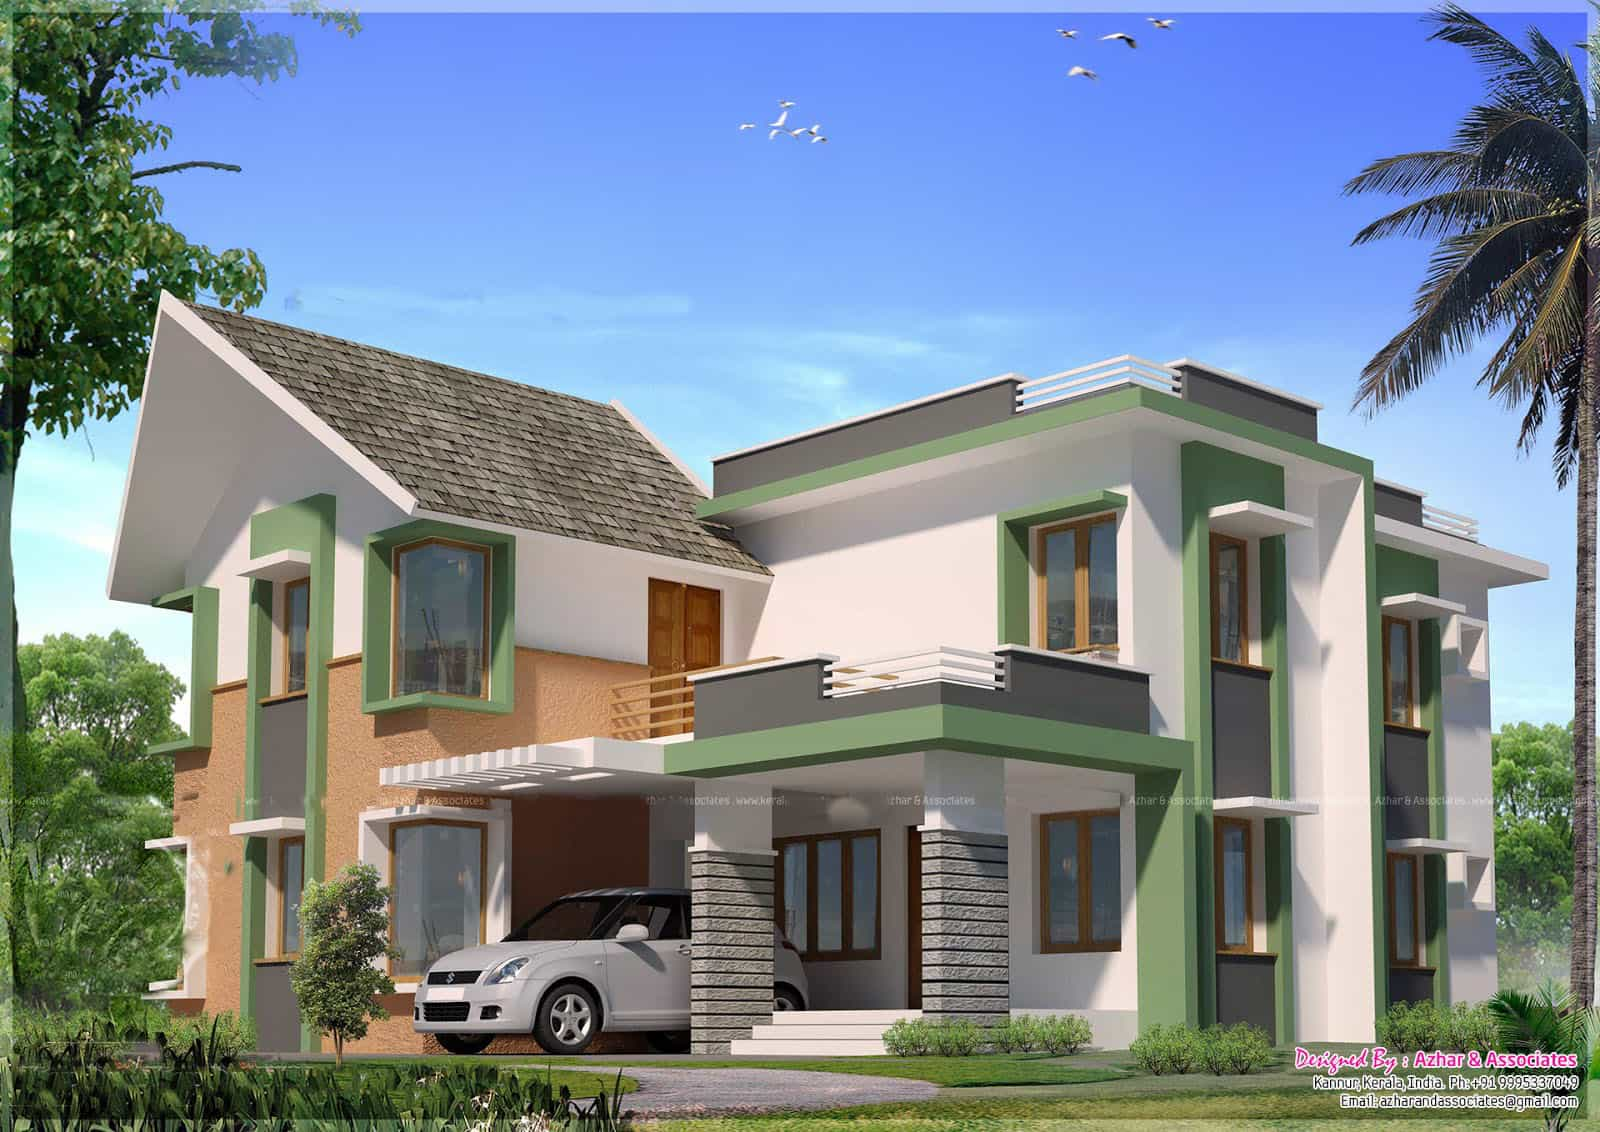 Kerala house plans with estimate for a 2900 home design New model contemporary house